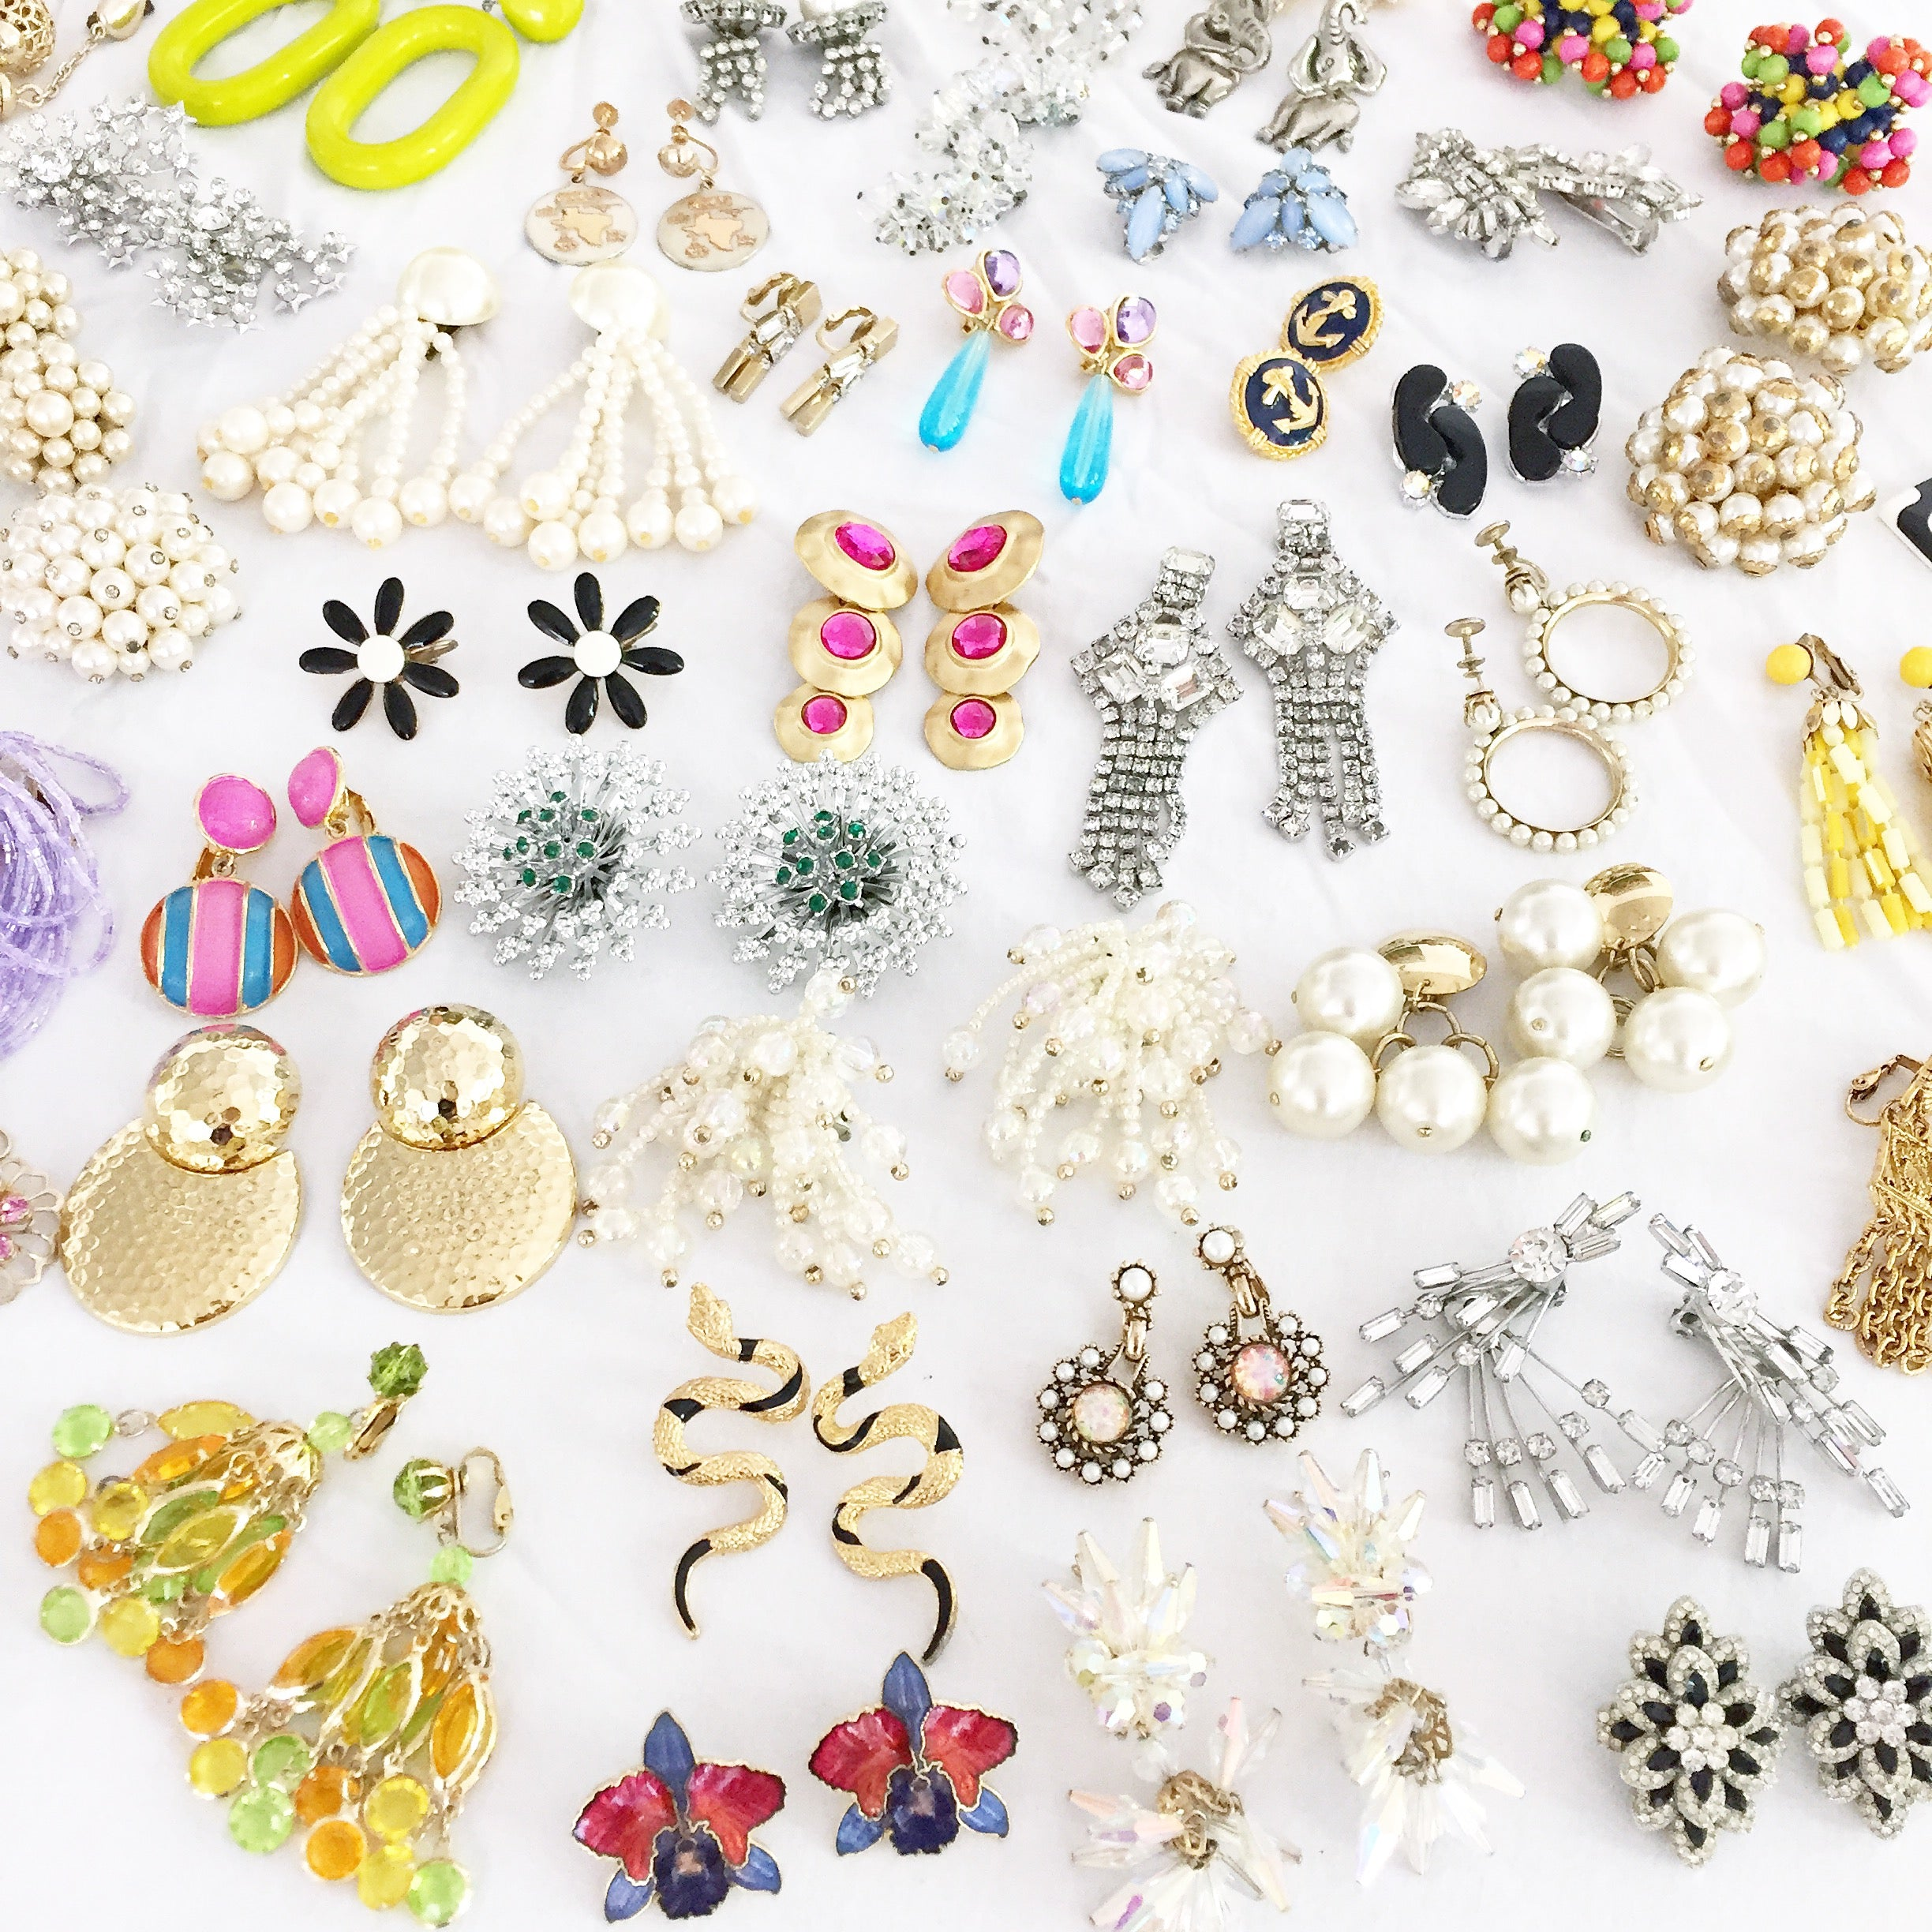 Value of Vintage Costume Jewelry